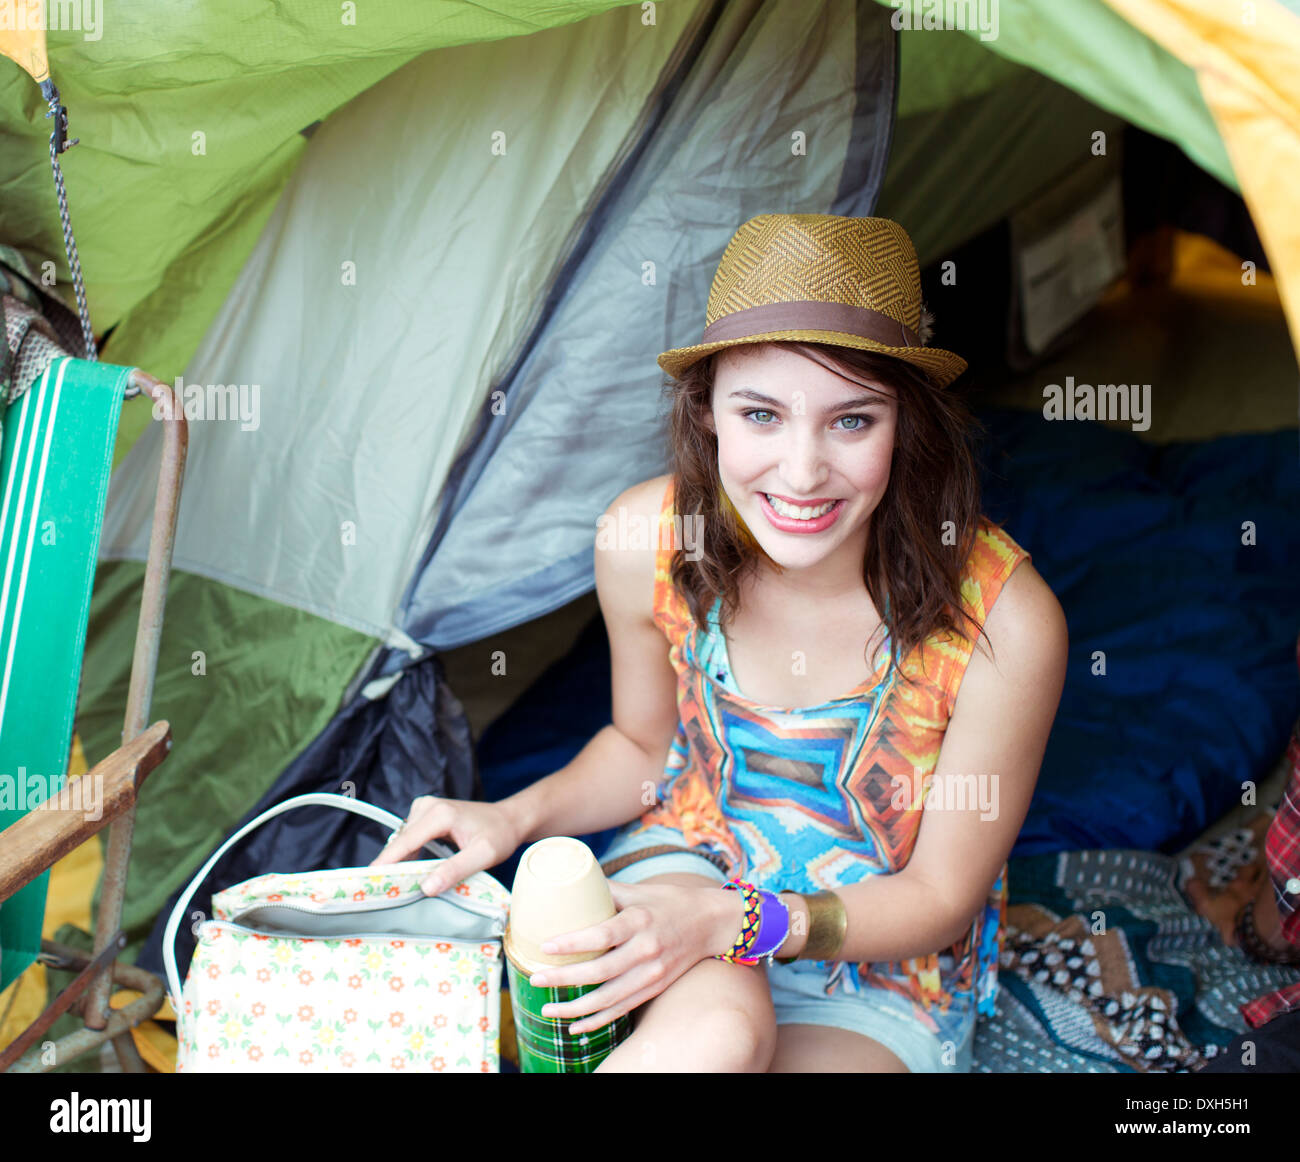 Portrait of smiling woman in tent at music festival Photo Stock